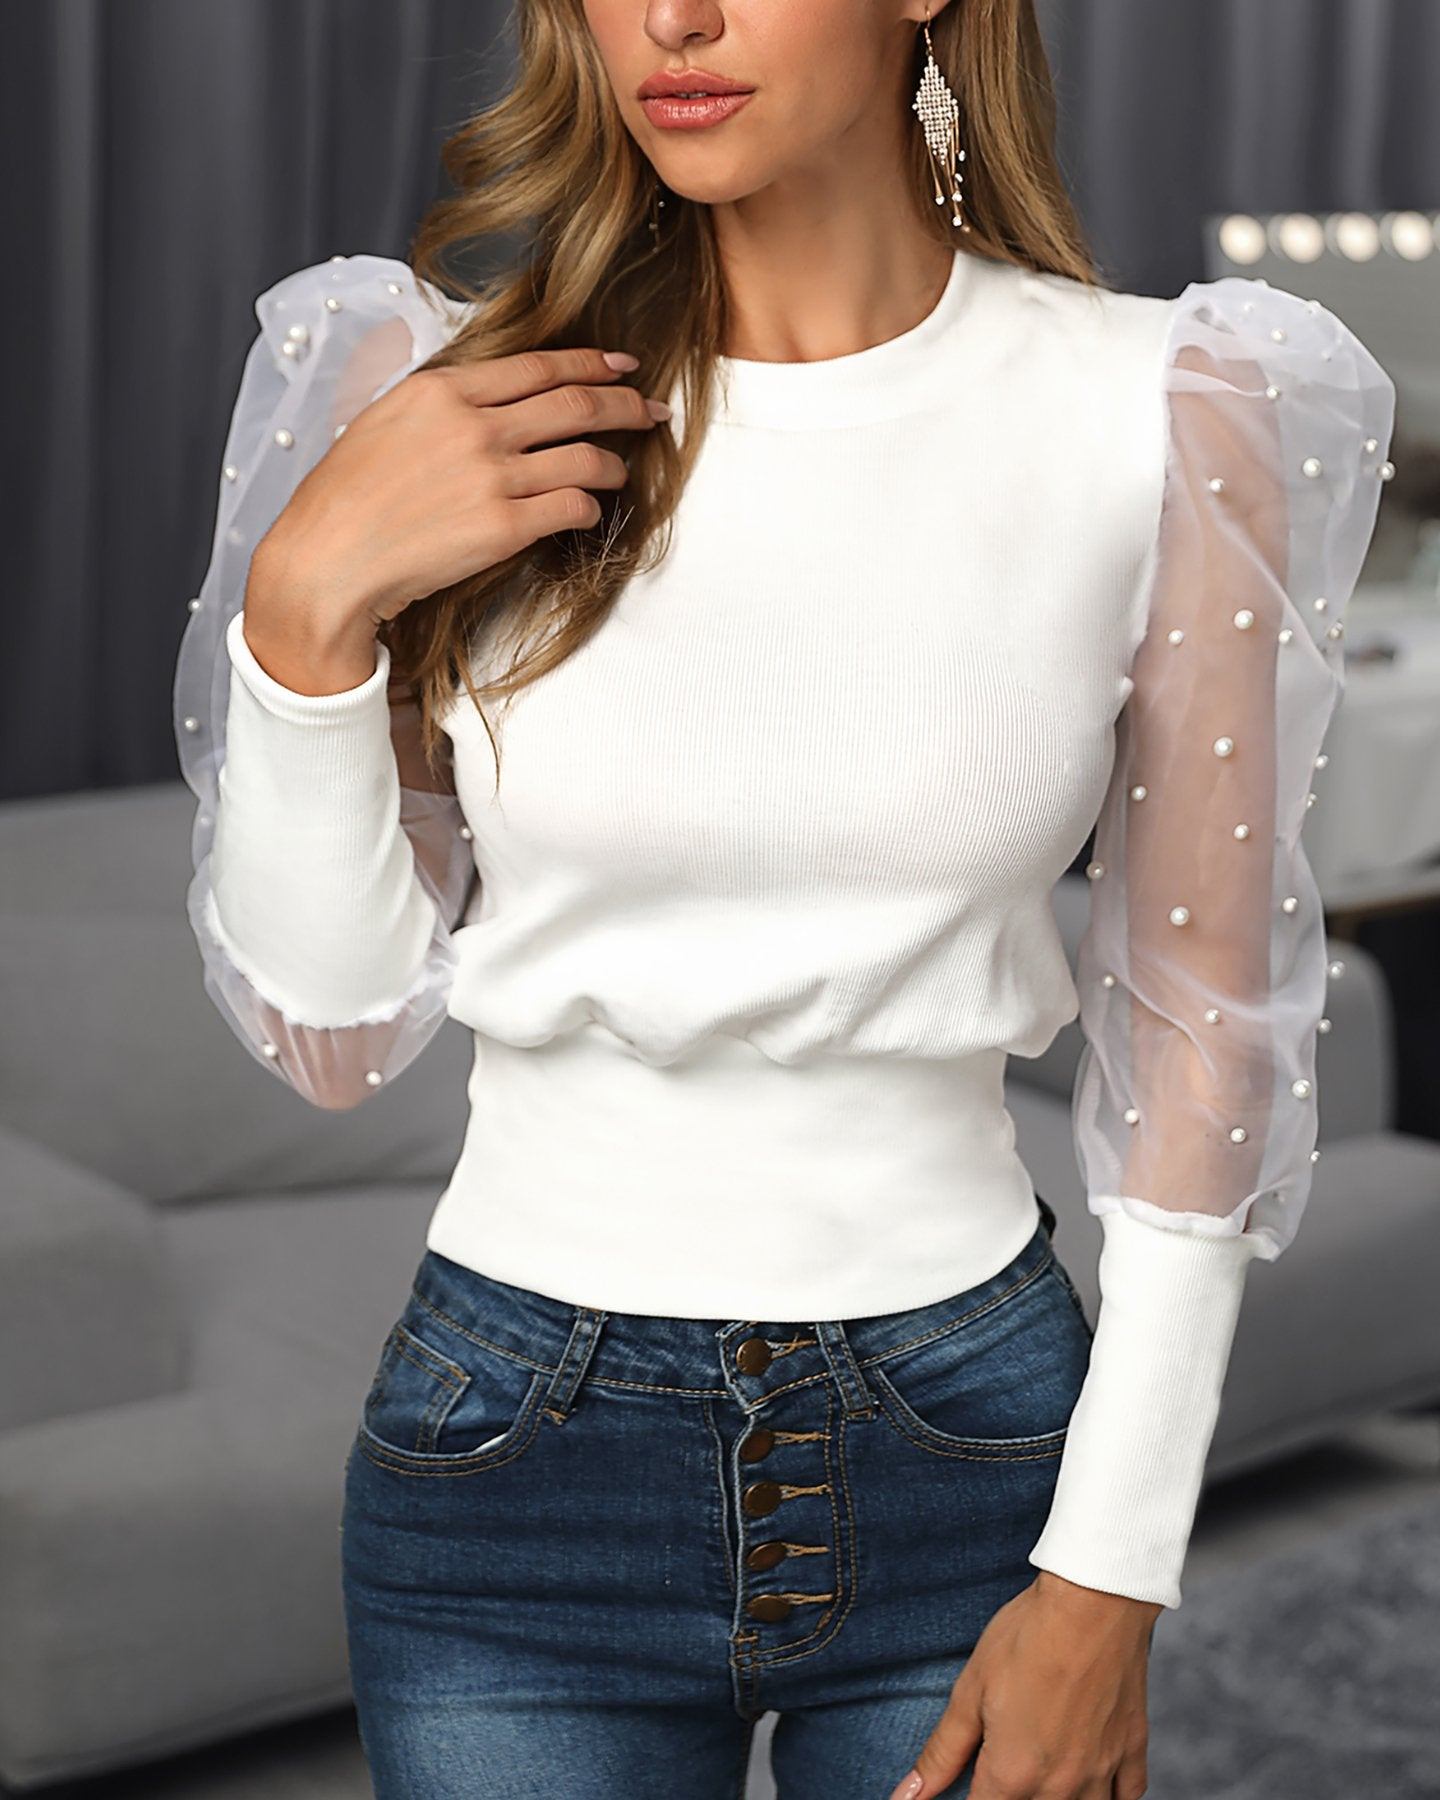 Outlet26 Beaded Design Puffed Sleeve Blouse white